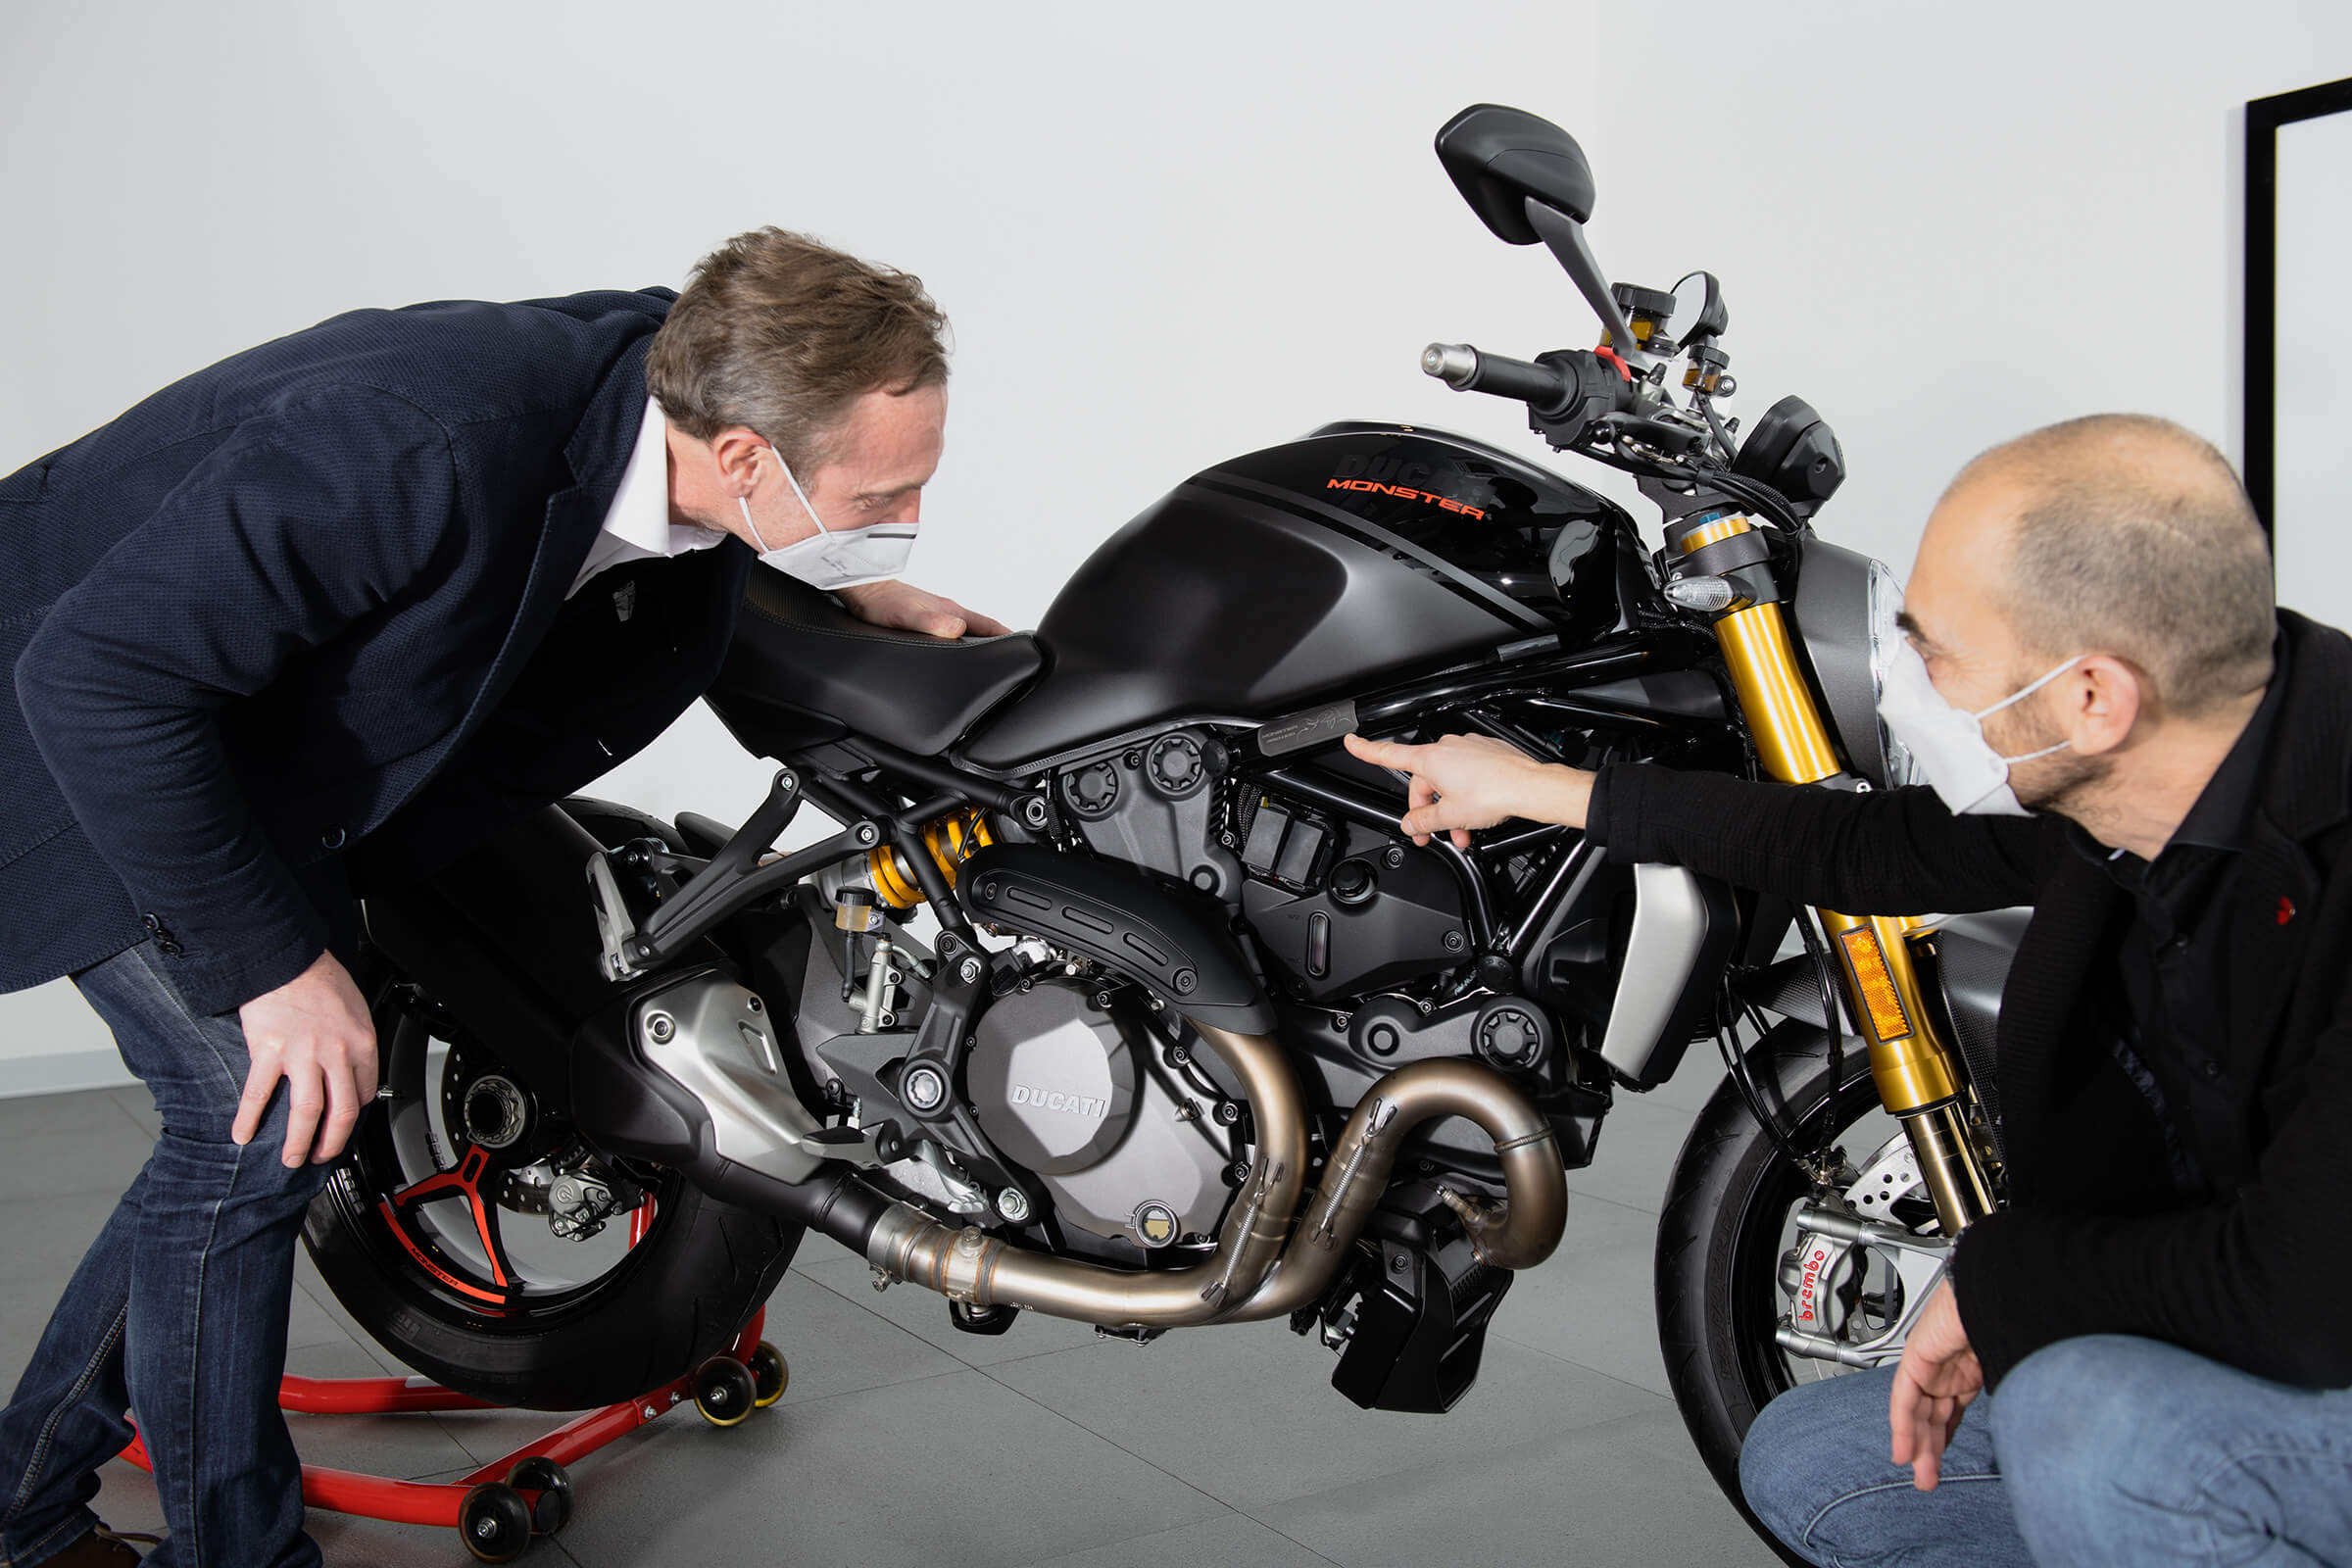 DUCATI MONSTER F. DE ROSE C.DOMENICALI